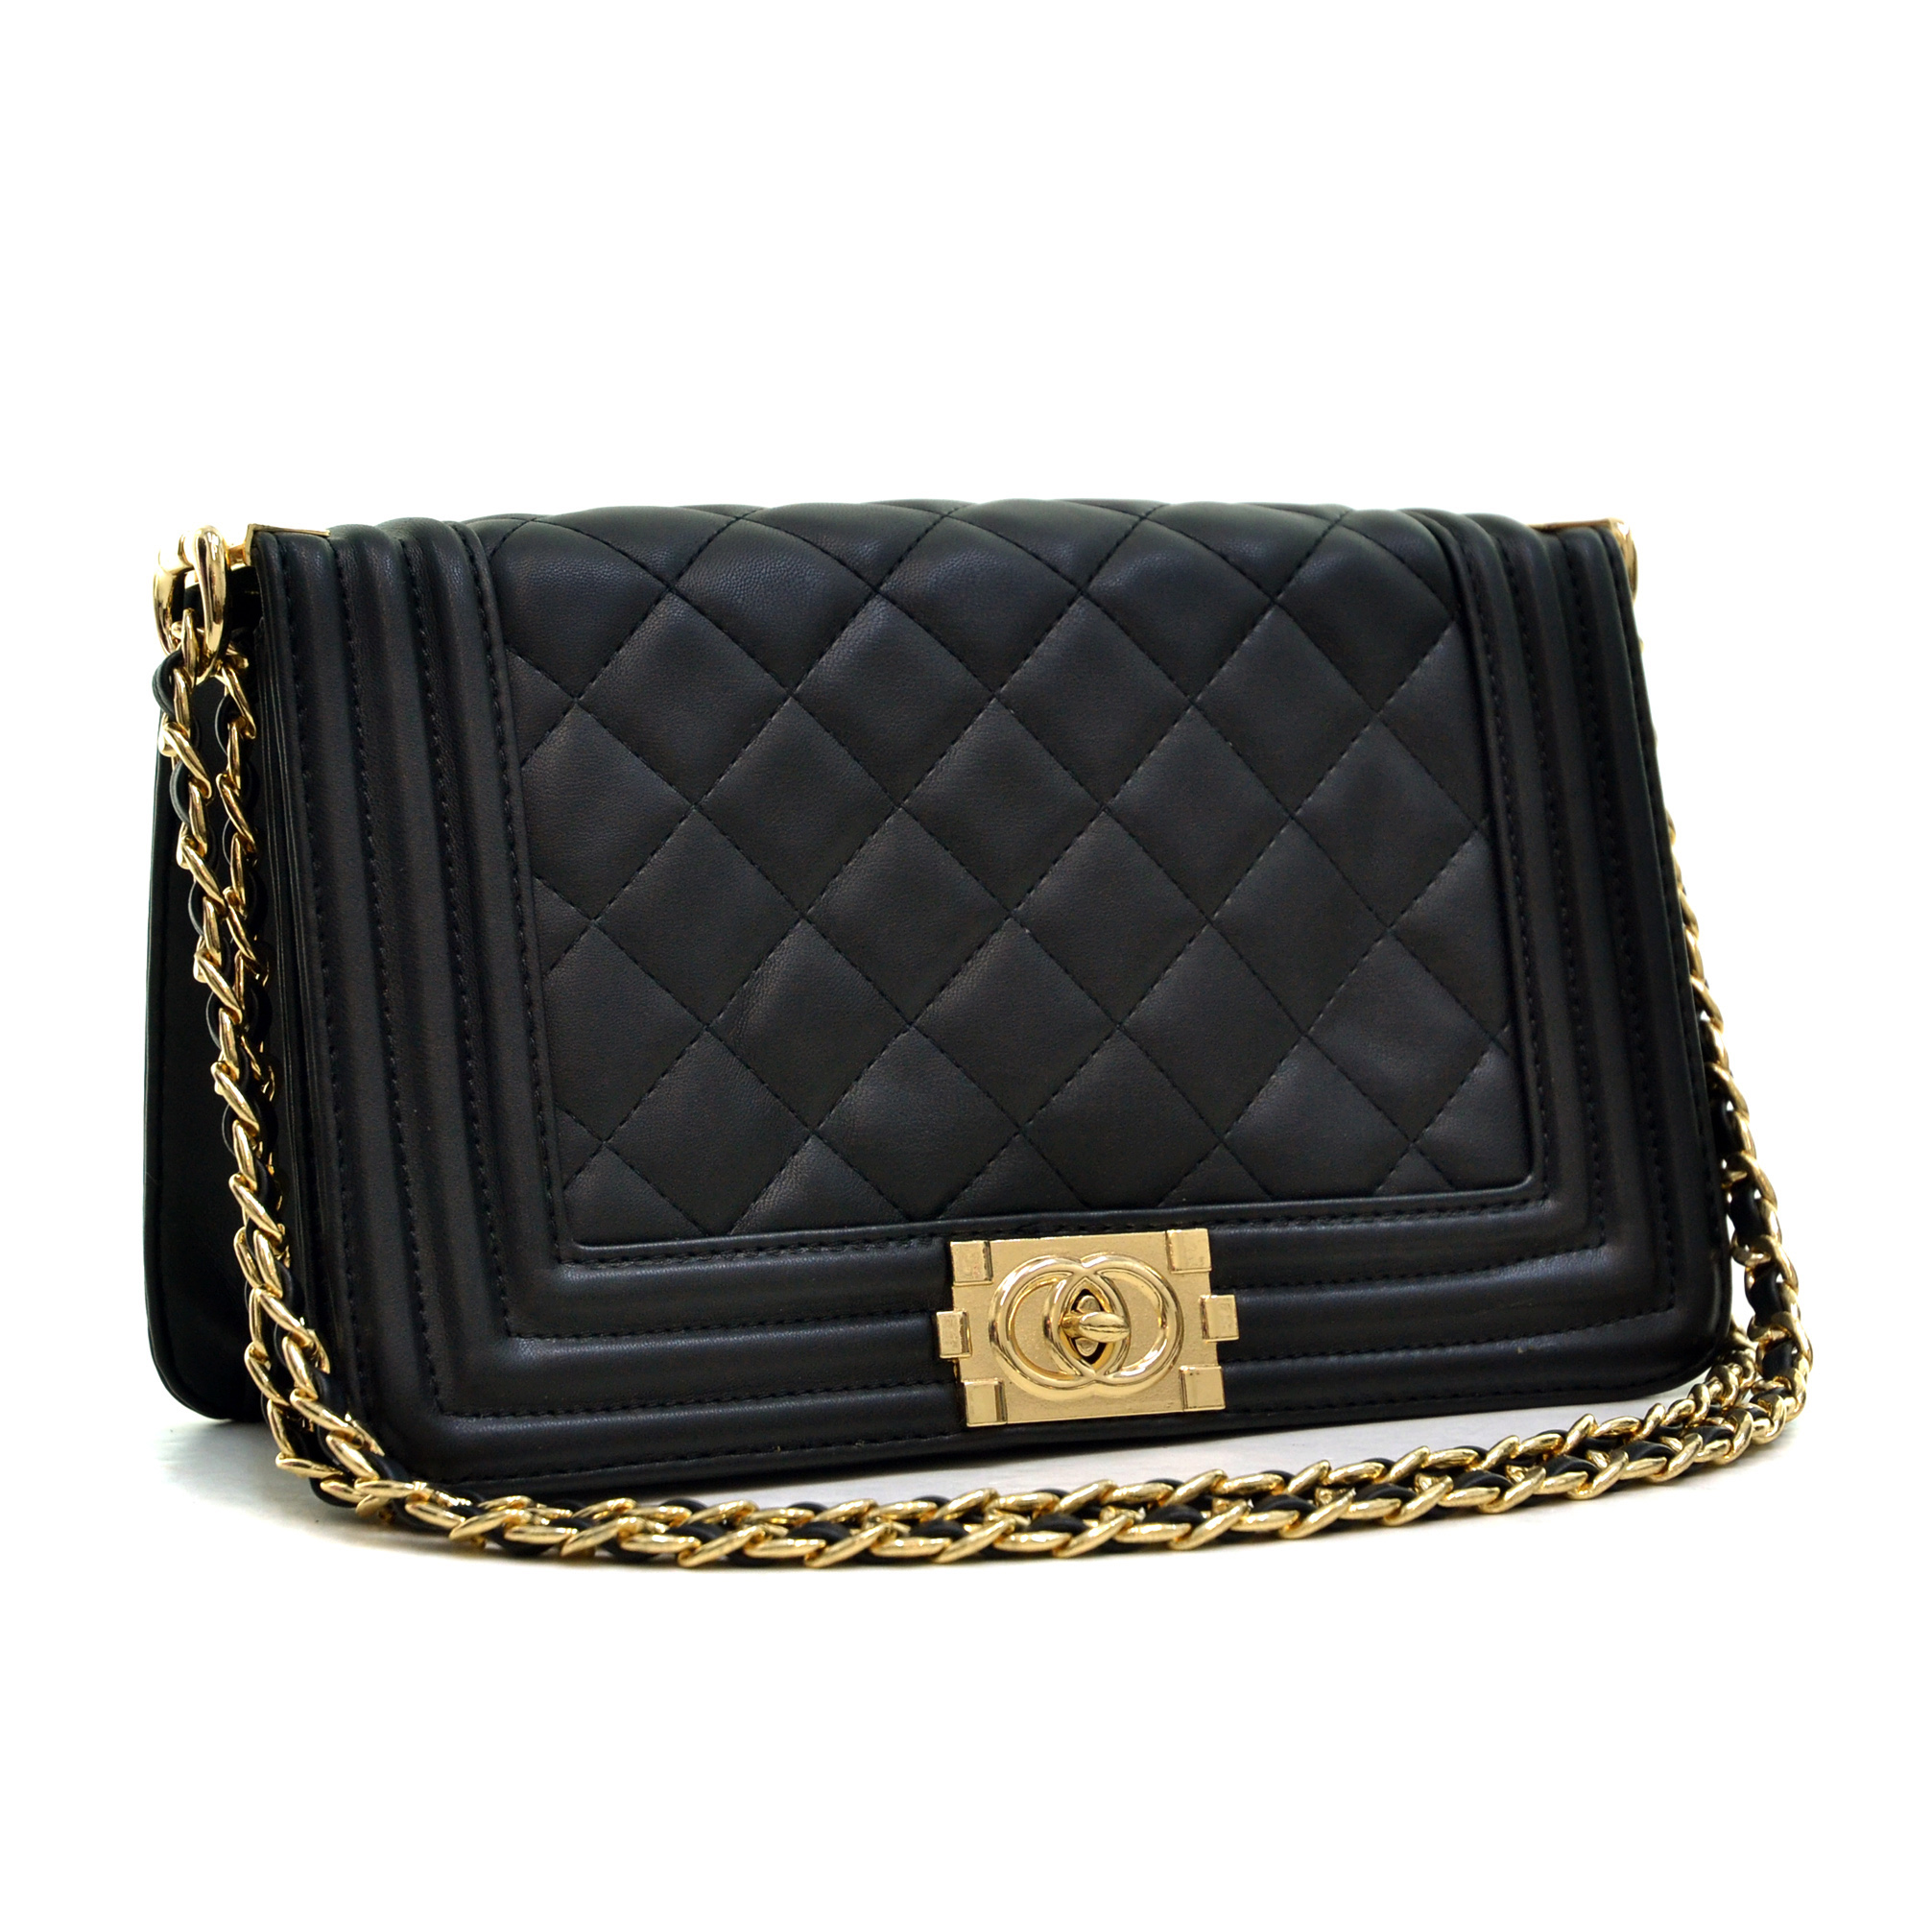 Dasein Quilted Crossbody Bag with Intertwined Leather Gold-Tone Chain Straps